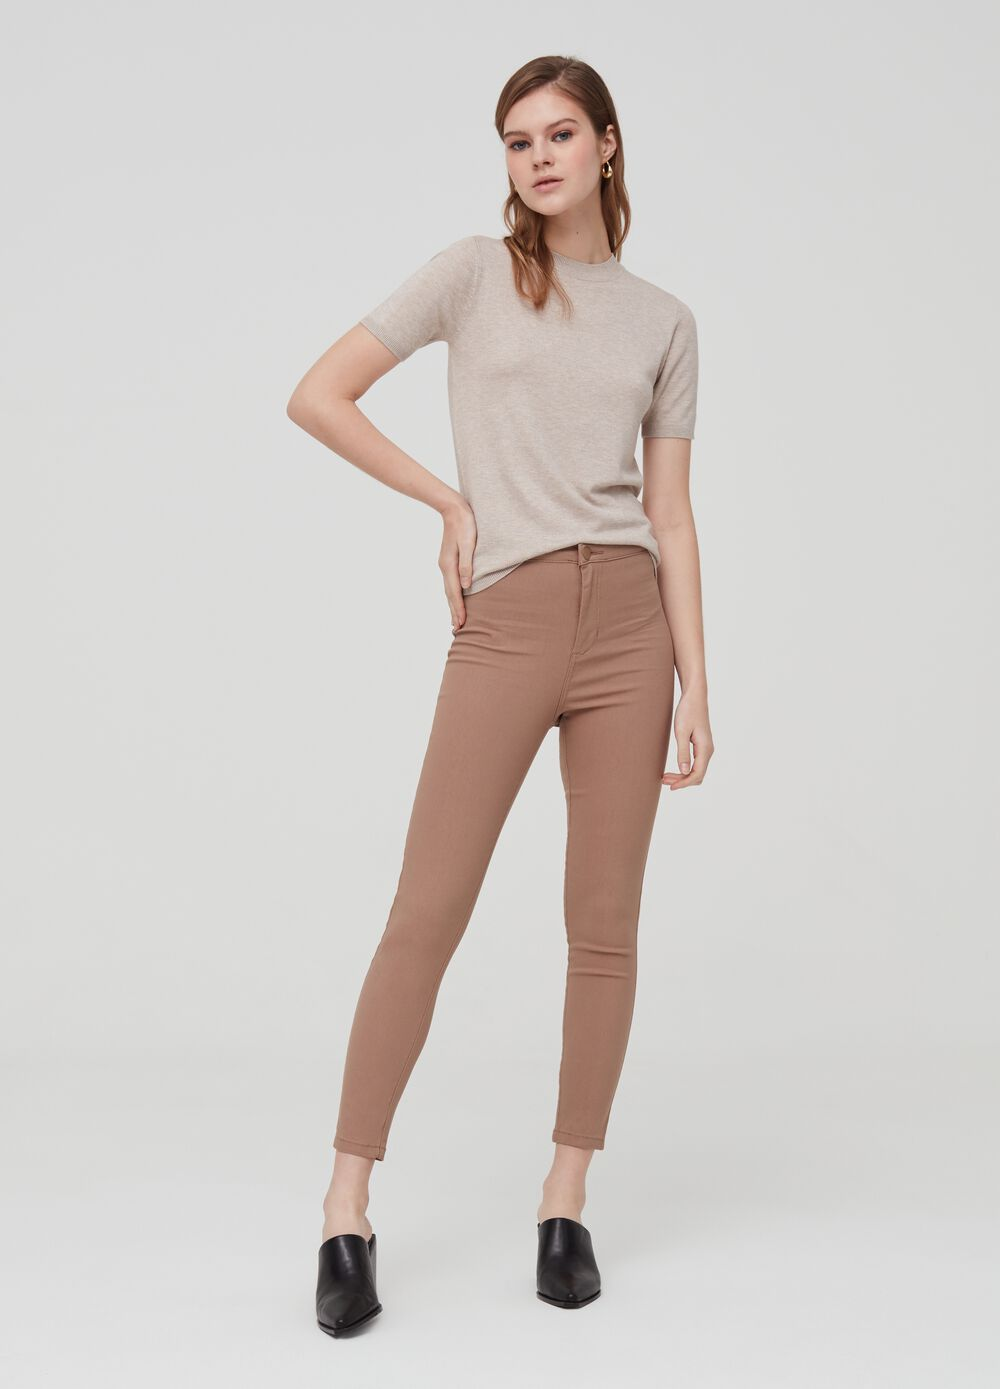 High-waisted trousers with pockets